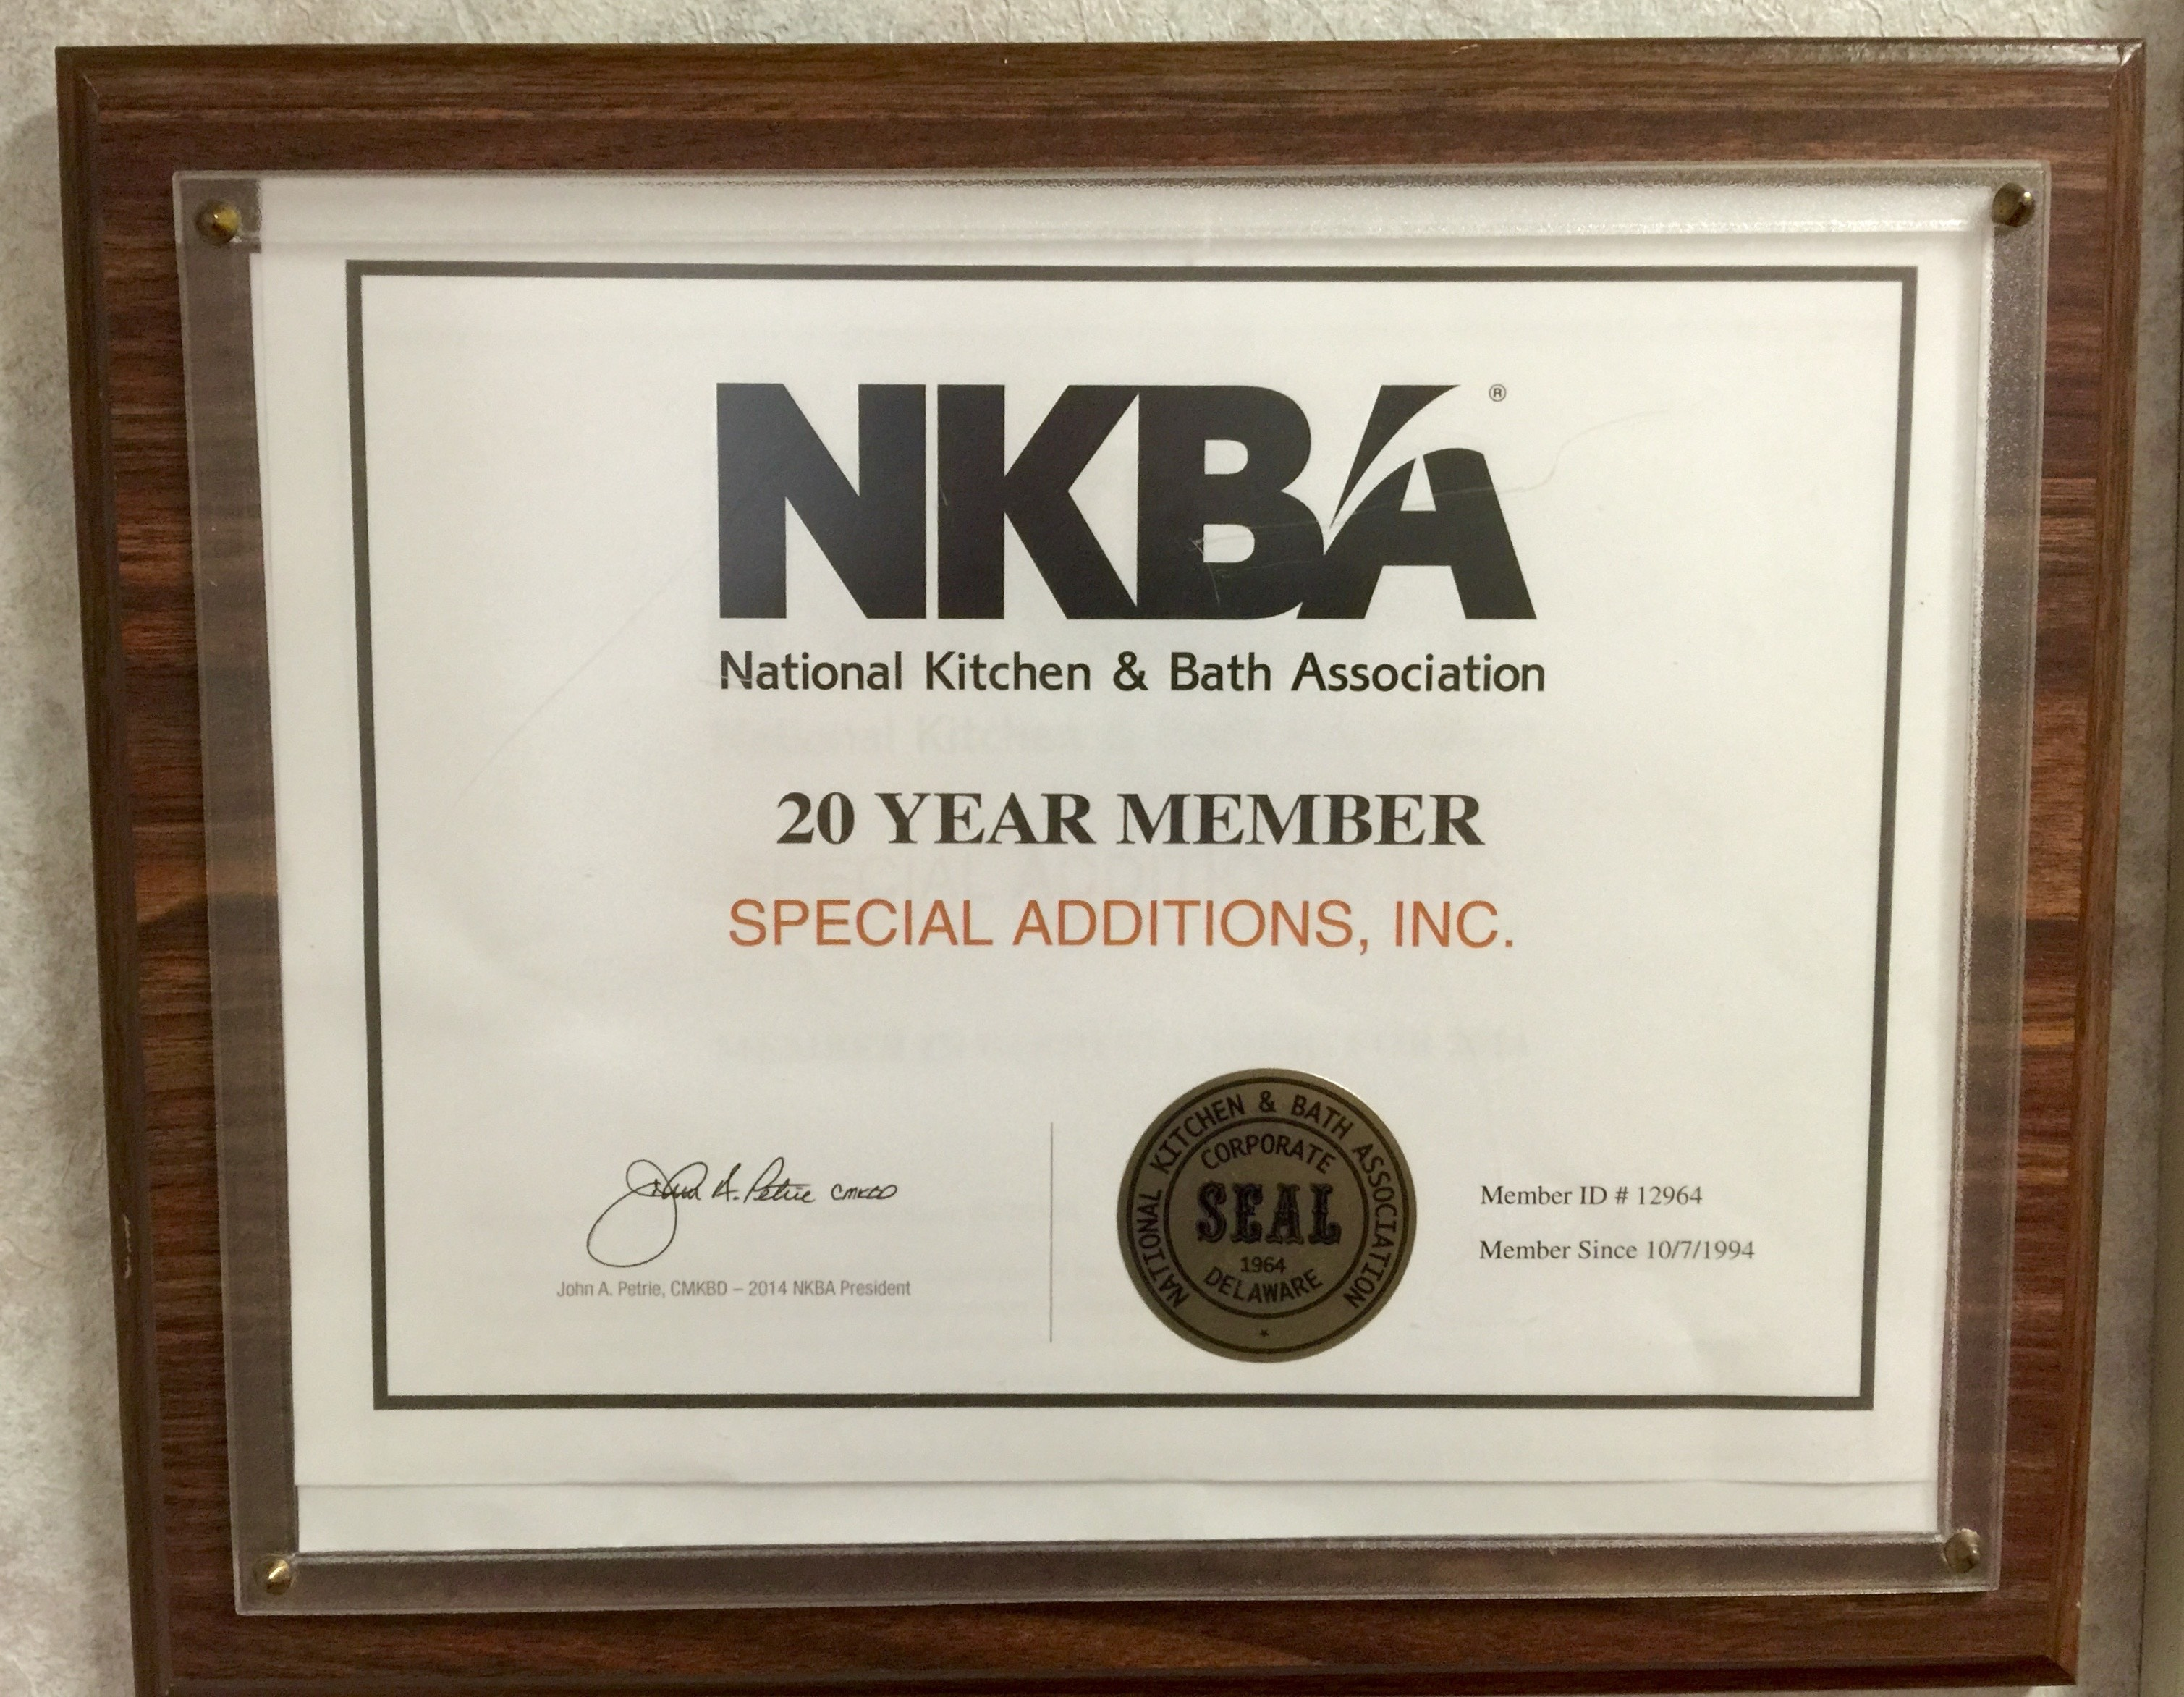 NKBA 20th Anniversary! – Special Additions, Inc.